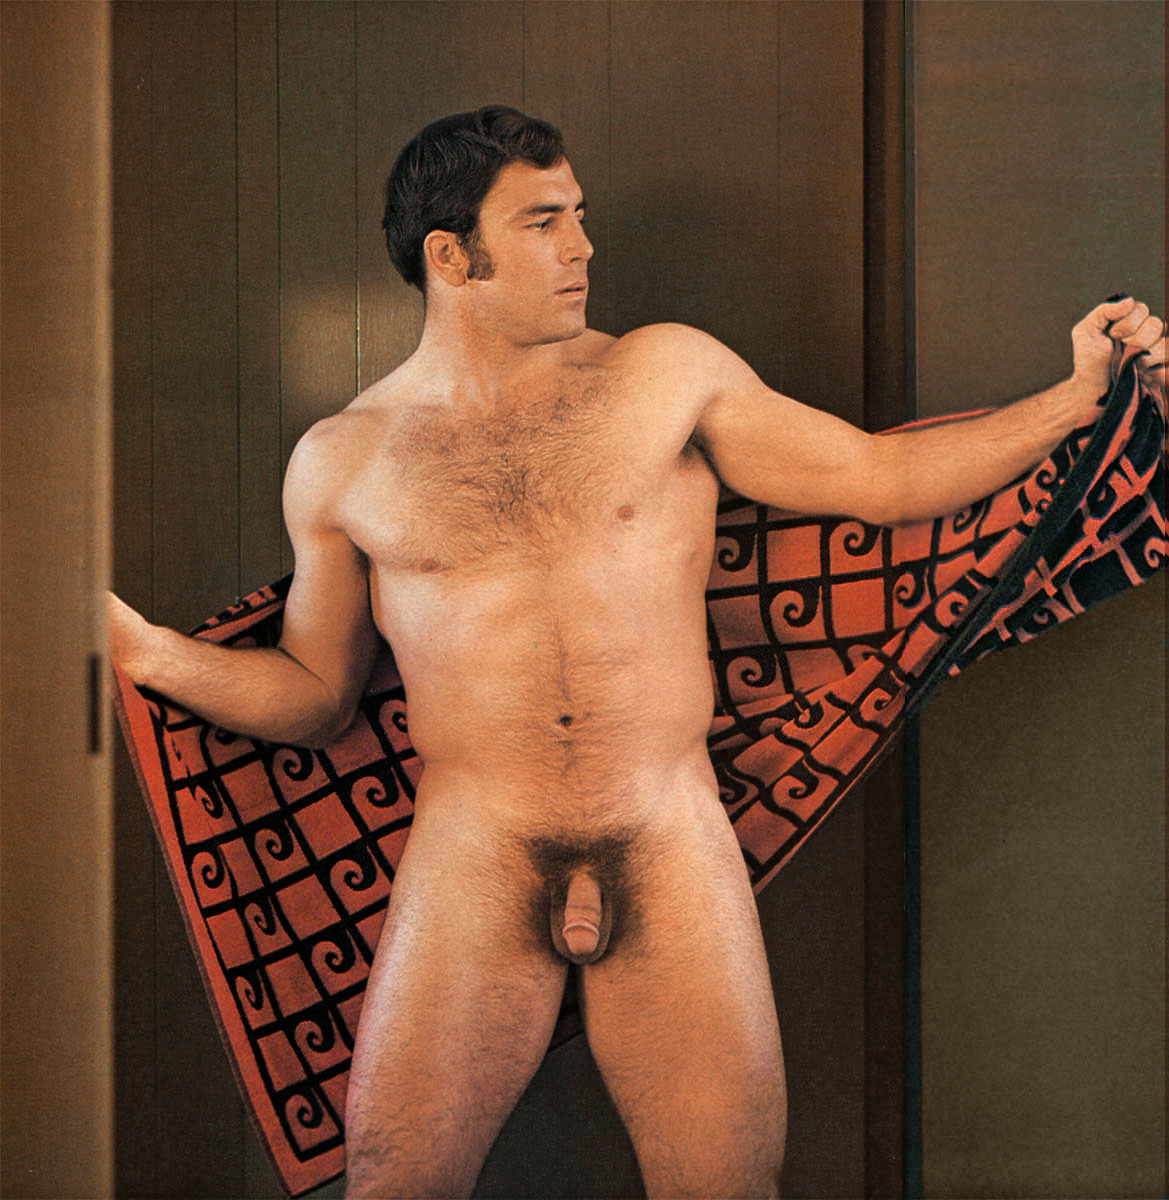 Alec recommend best of gay 1970s nude male